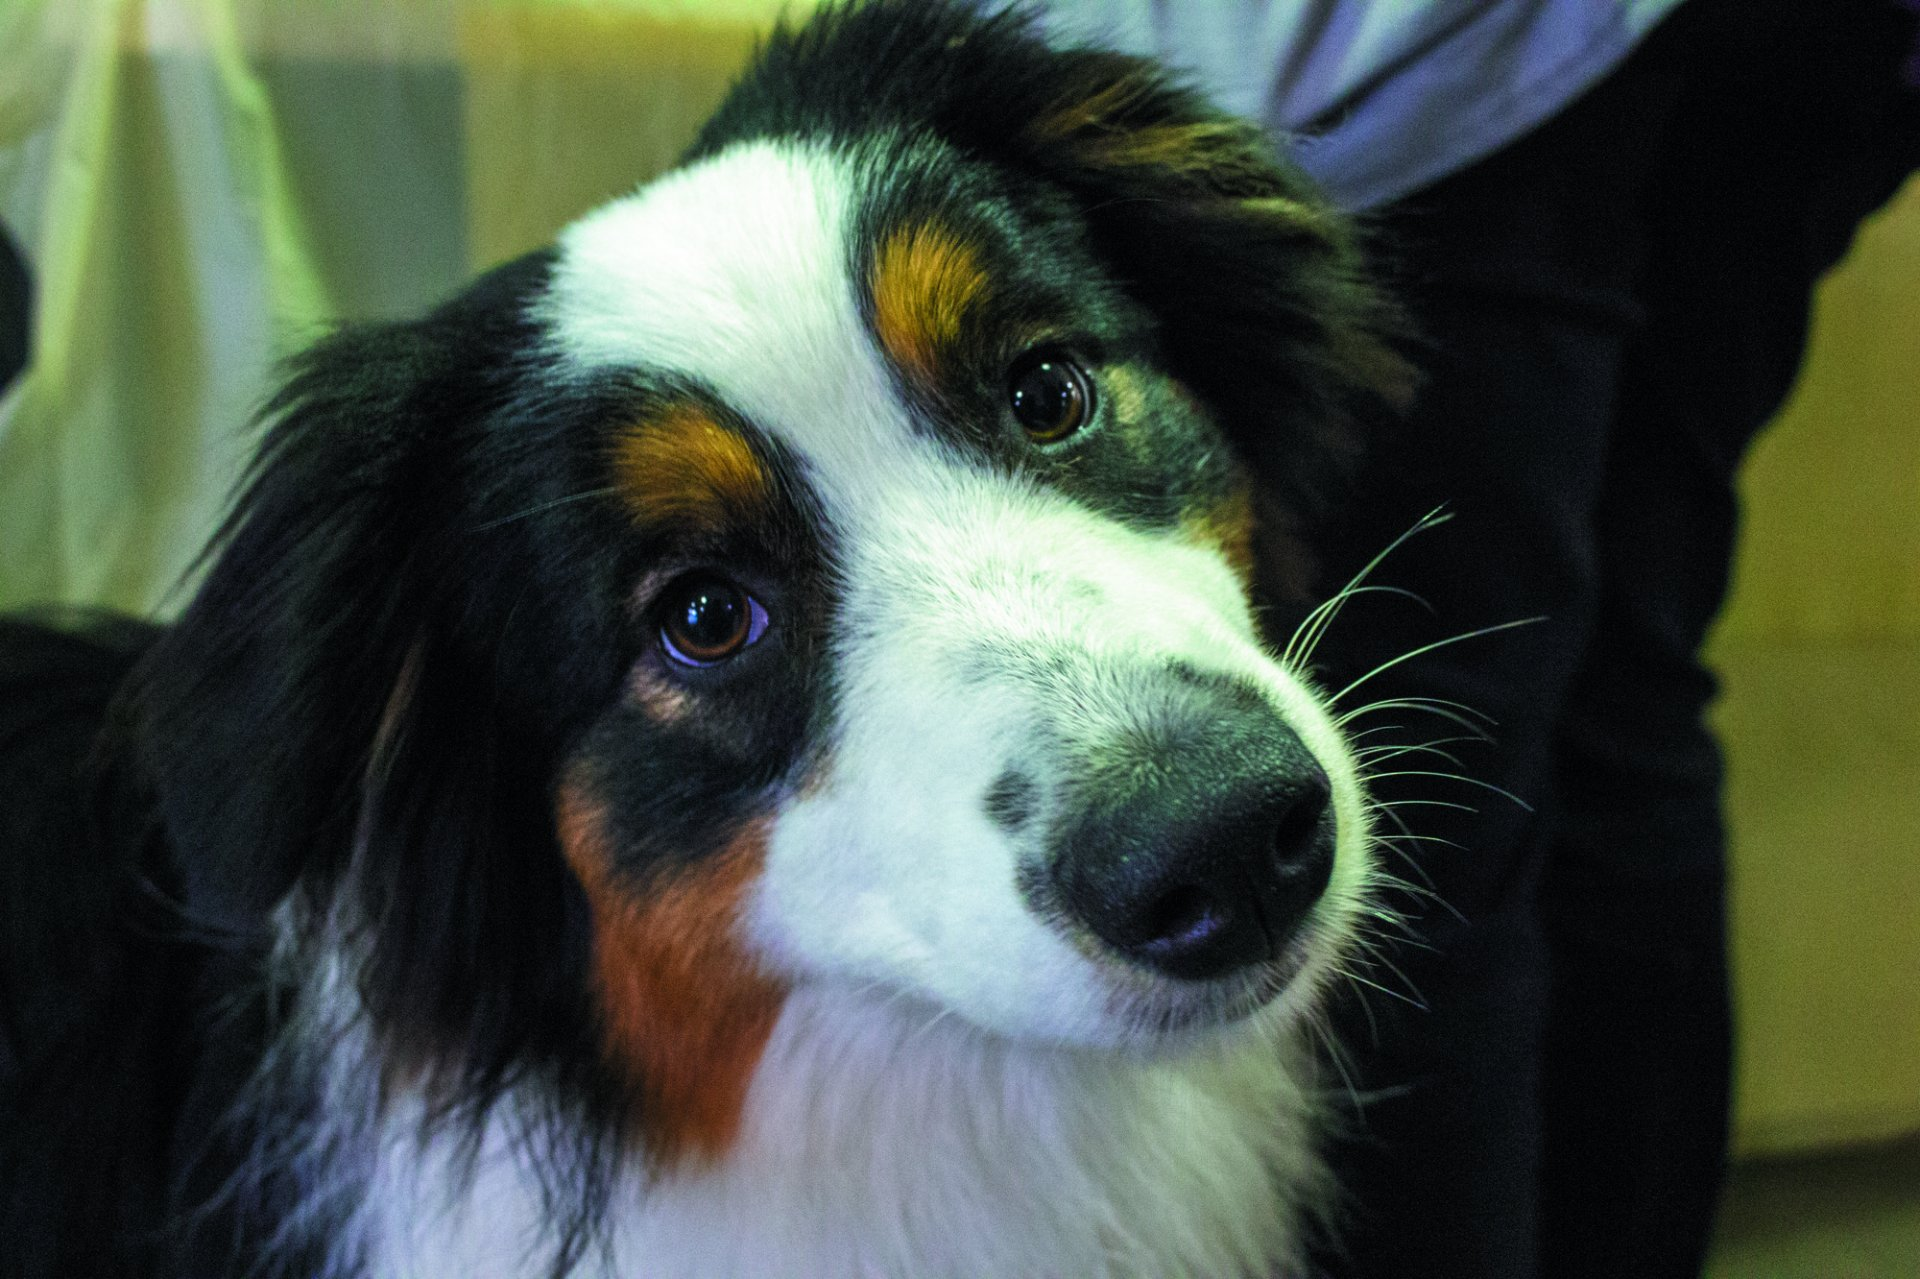 Australian shepherd, Josie just shy of 11 months was a bit skeptical of photos being taken but finally warmed up to the camera. | Photo by Cassaundra Caudillo